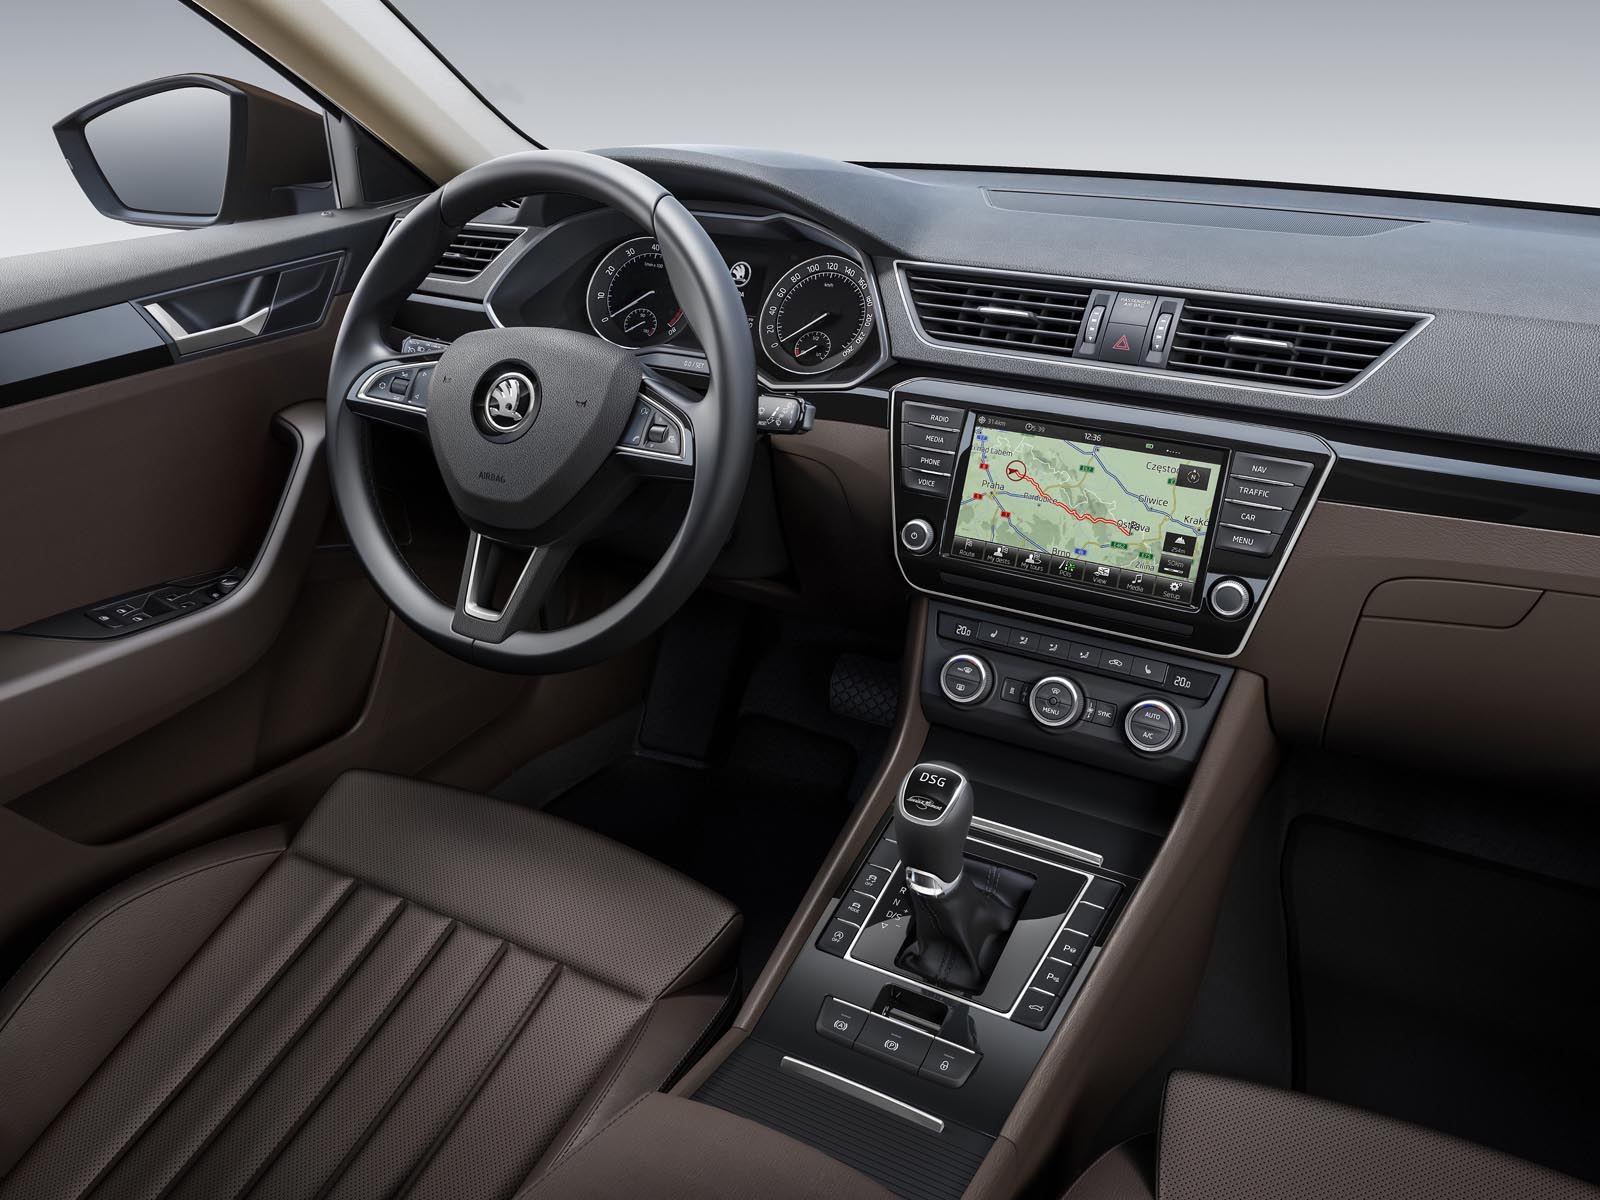 Skoda Superb 2015 - floteauto 10